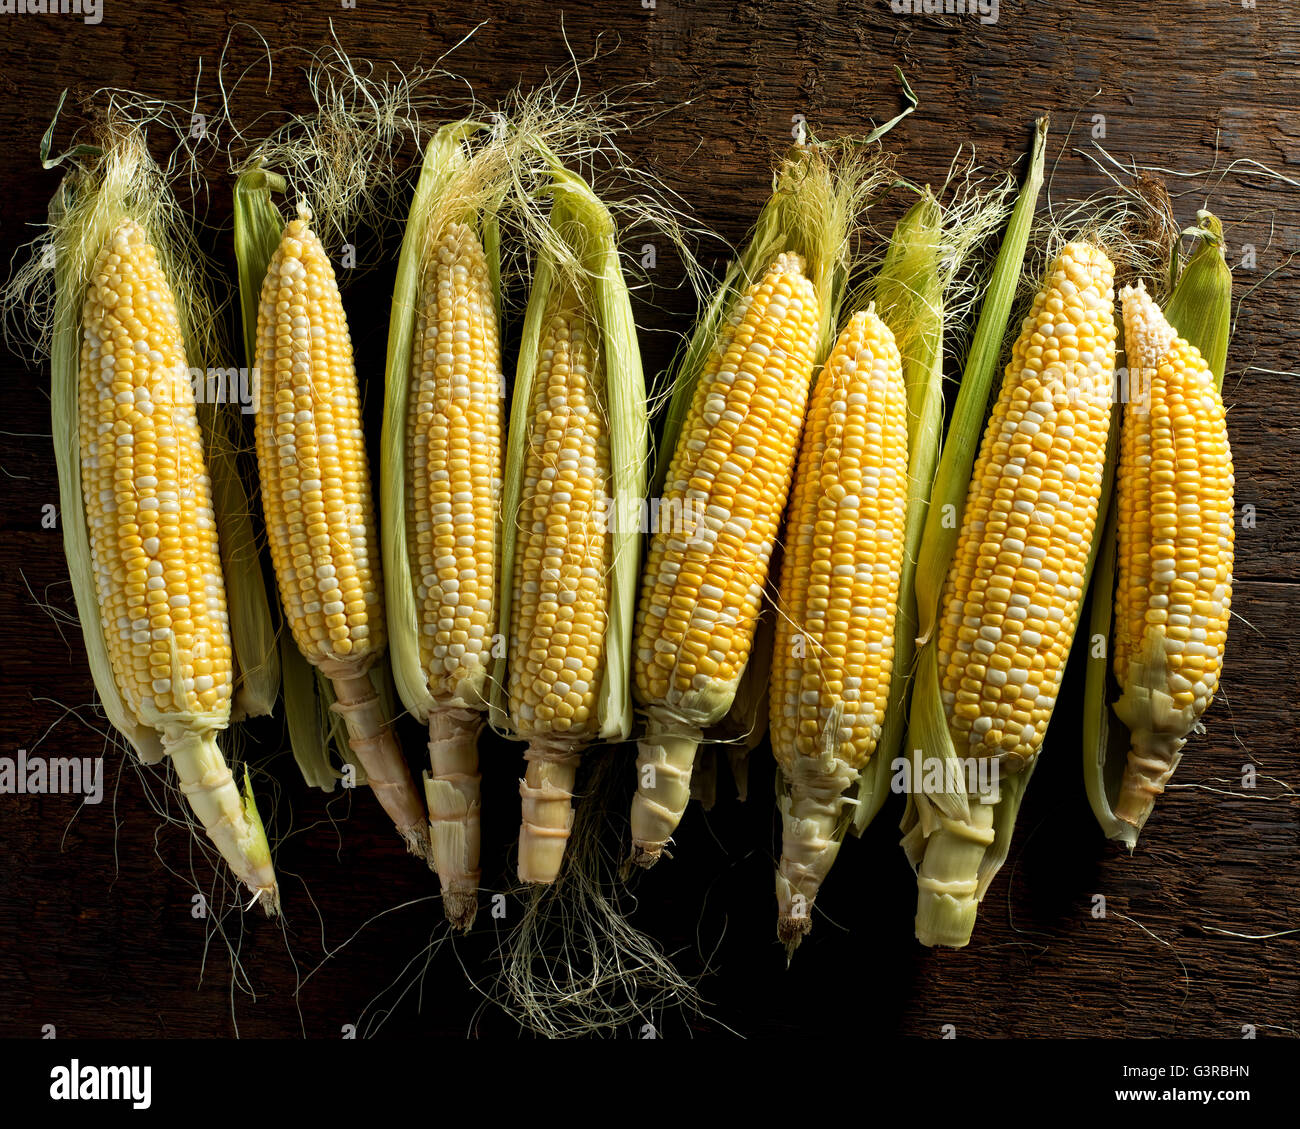 Fresh local organic corn on the cob against a rustic harvest table background. Stock Photo